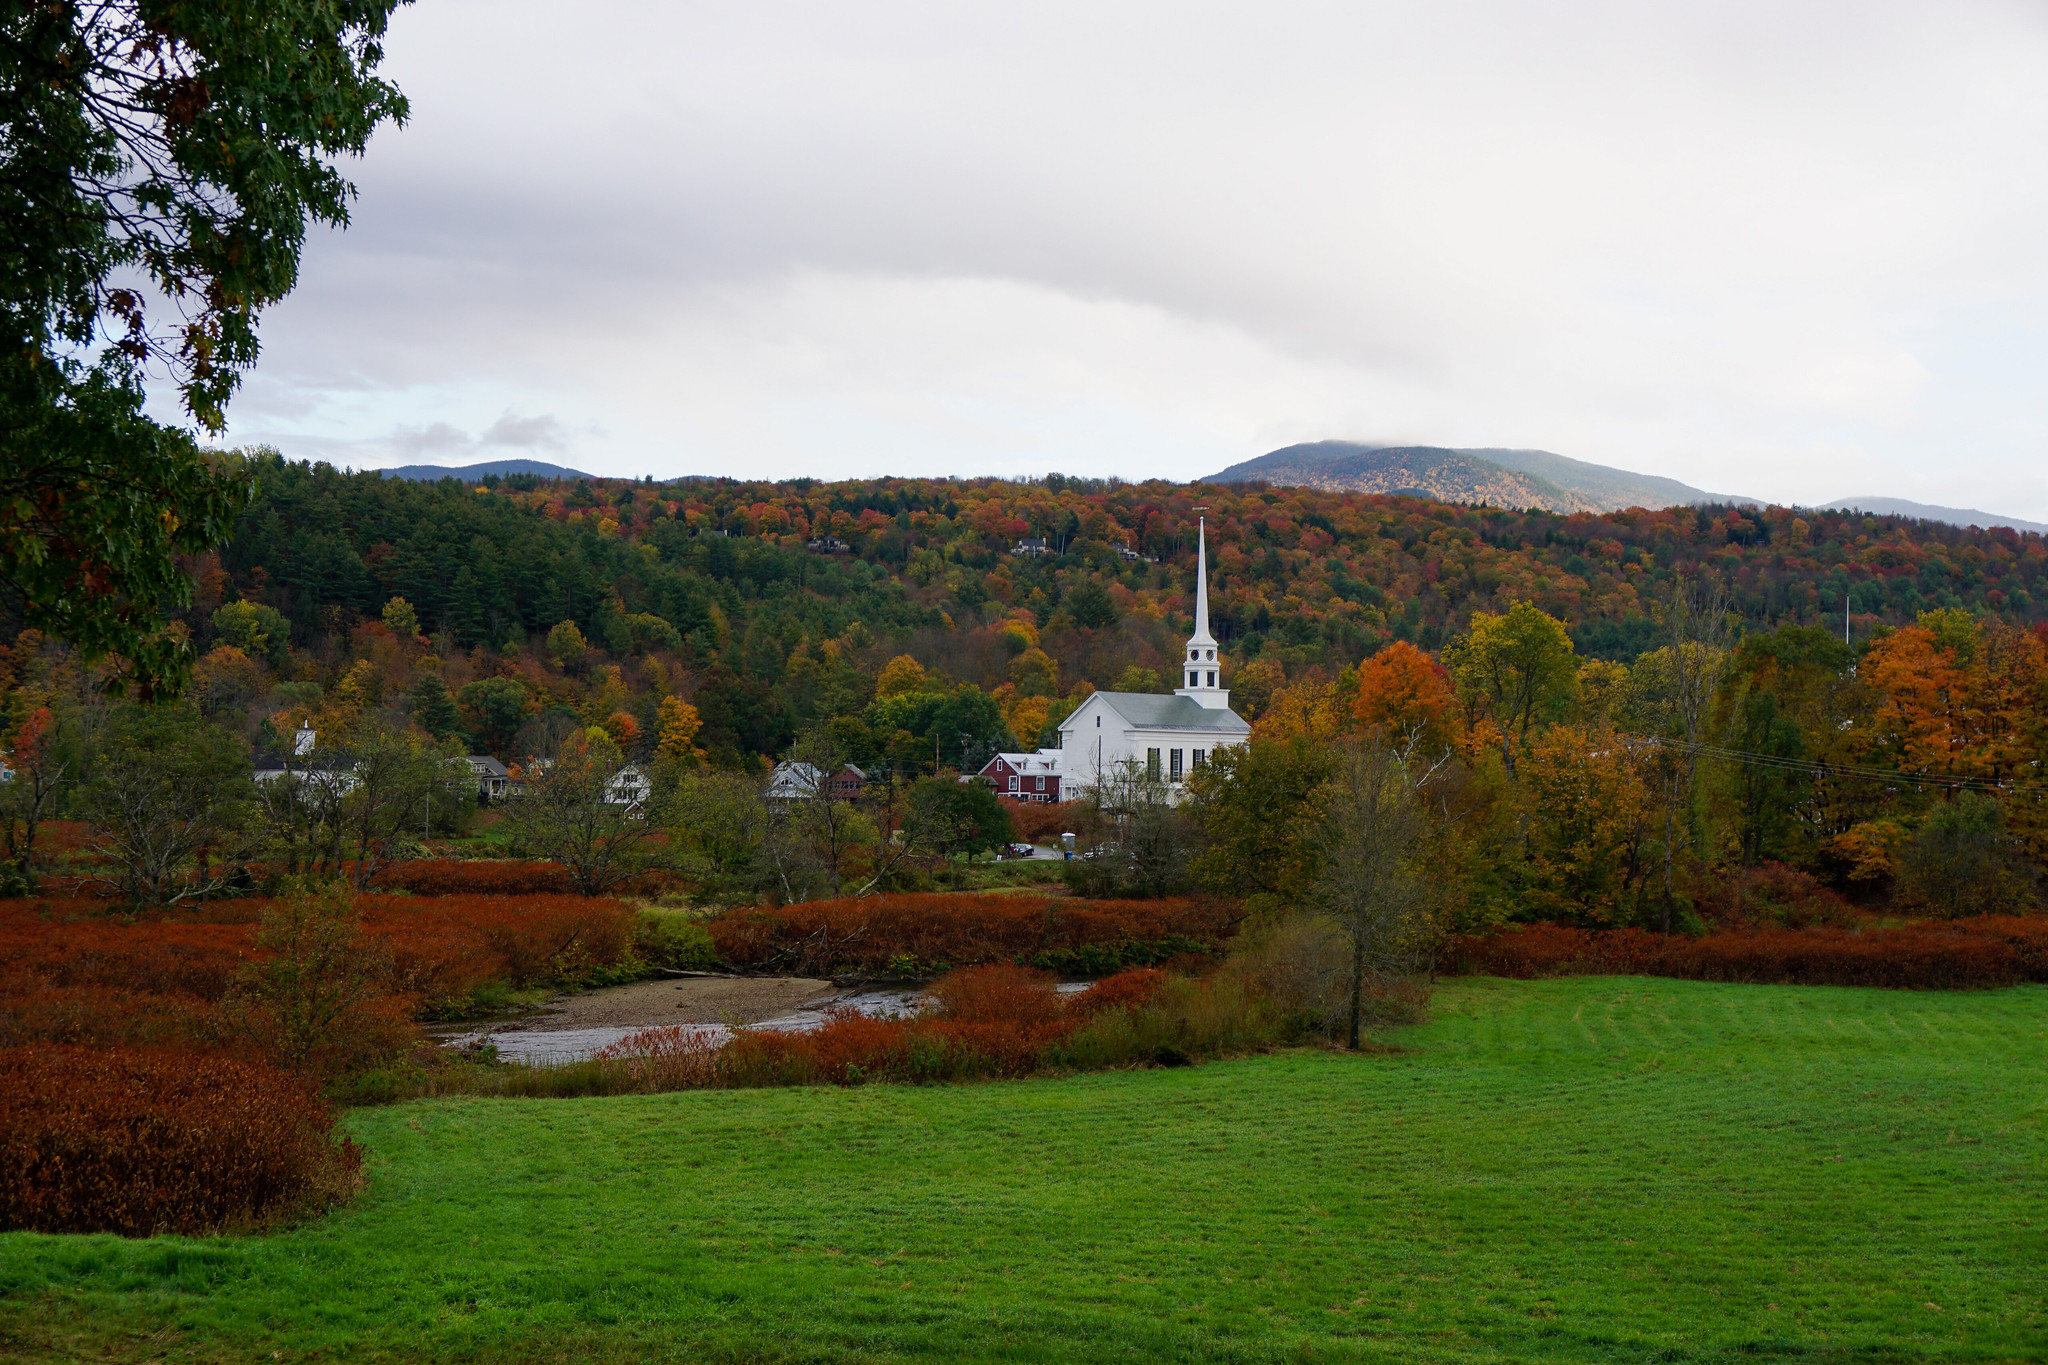 Stowe Vermont | Stowe Community Church | My Complete Vermont Fall Travel Guide: What to See, Do & Eat | Ultimate Fall Guide to Vermont | 5 Day Vermont Road Trip | Fall Foliage Road Trip Guide